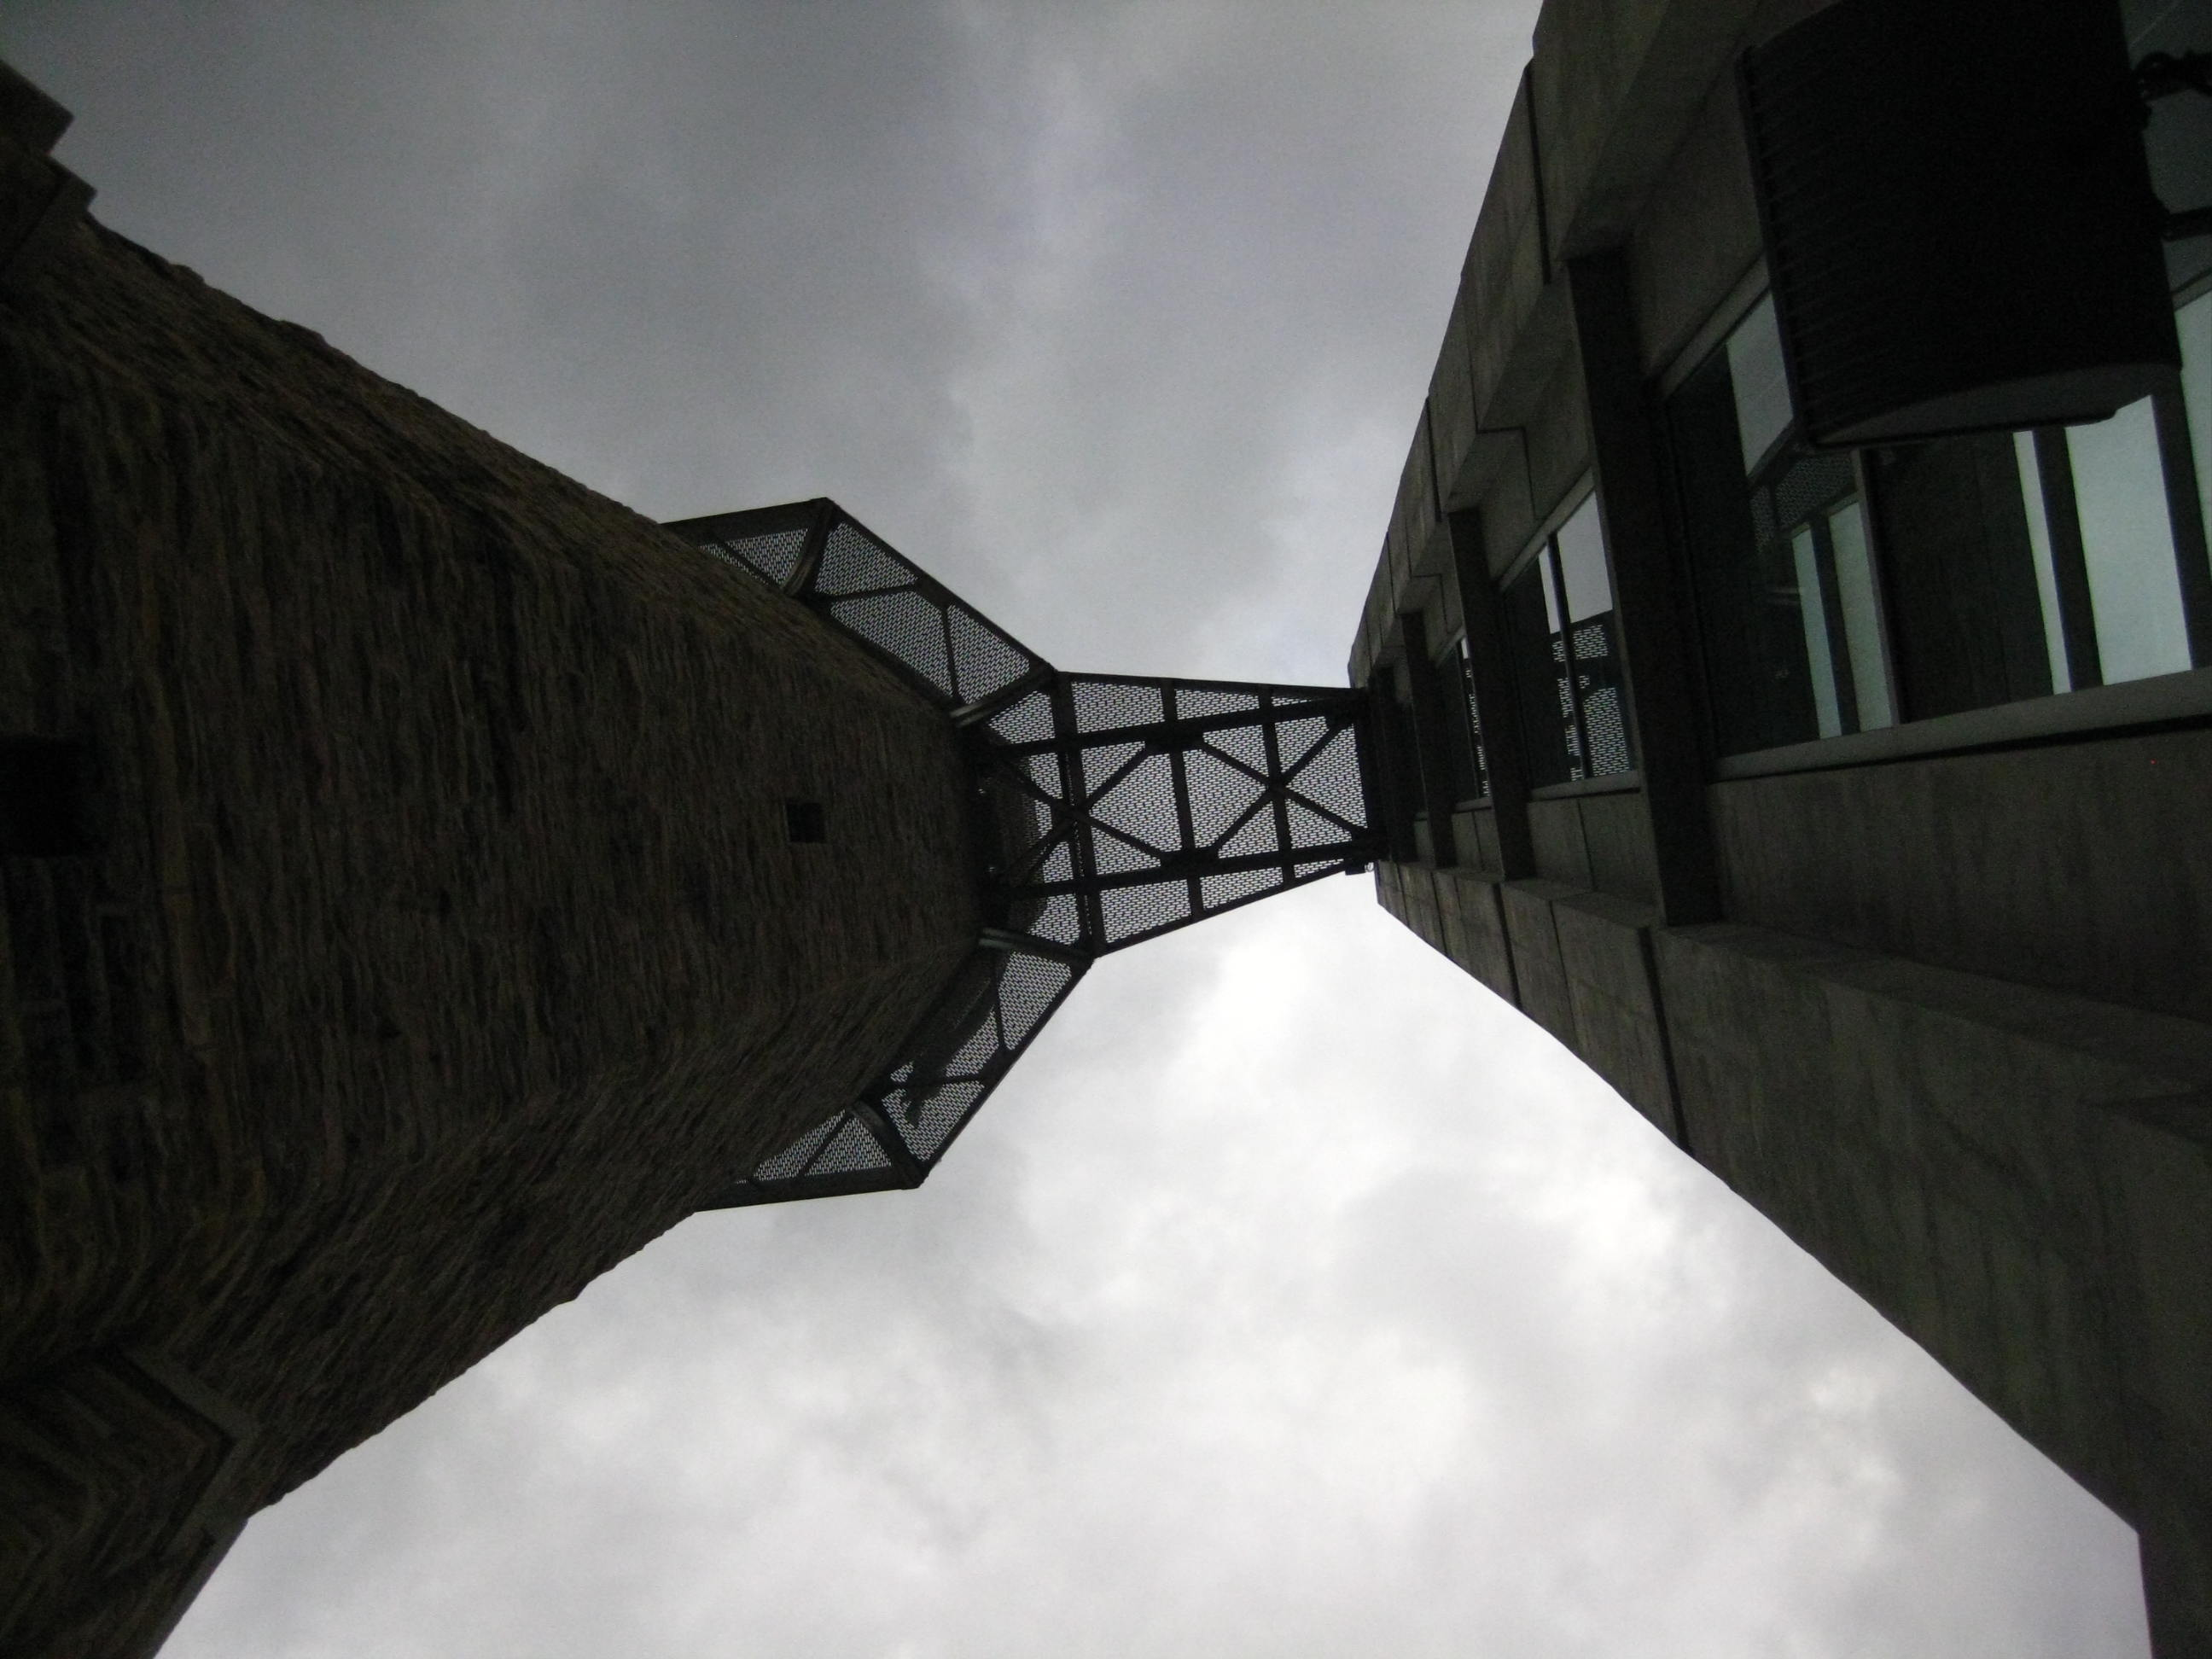 Looking up in between Vulcan's pedestal and the addition